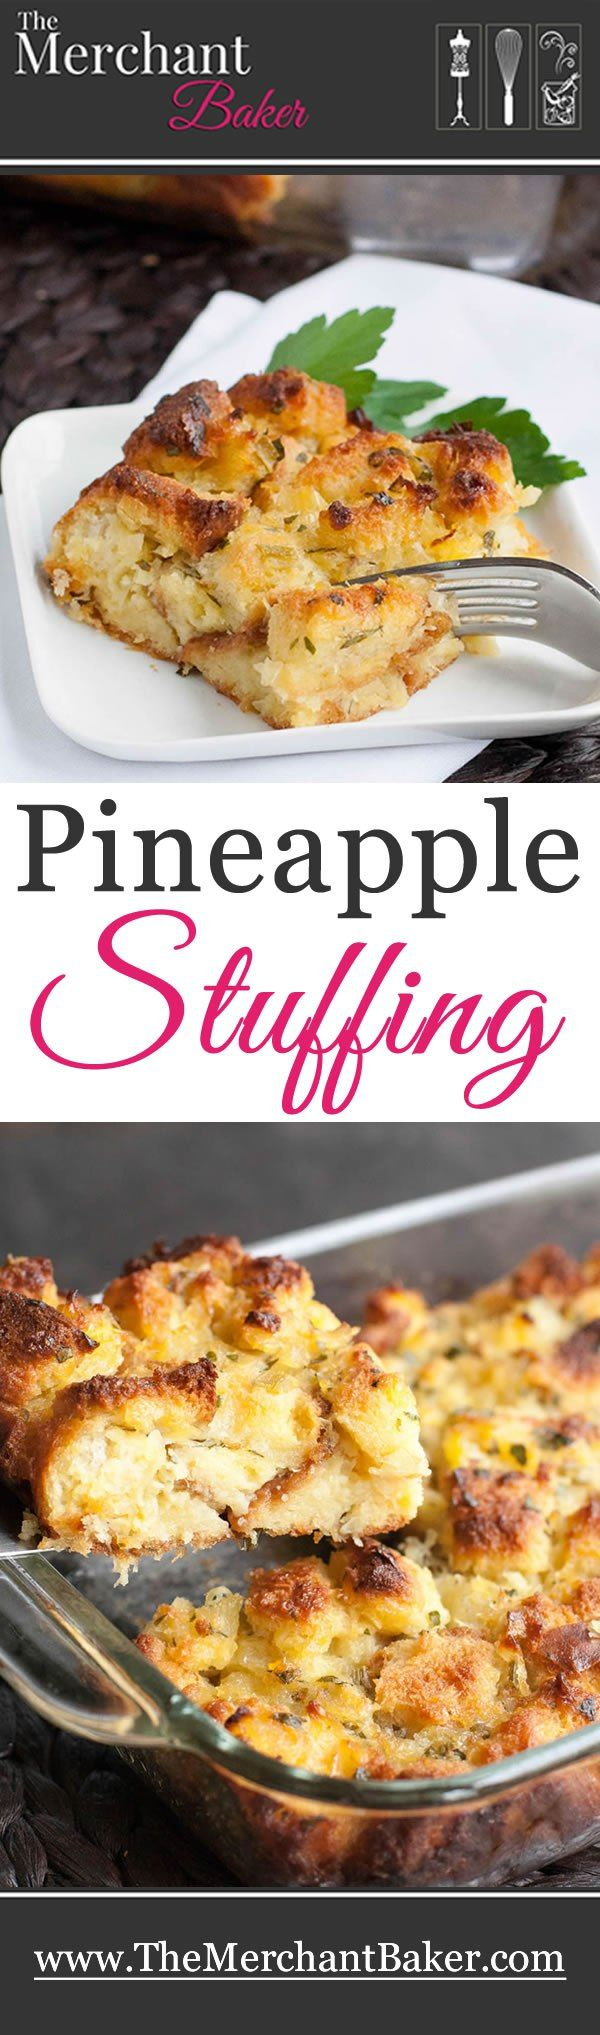 Pineapple Stuffing. A sweet and savory side dish that's a twist on classic stuffing. It's a perfect served with ham and pork dishes. #stuffing #pineapple #easter #sidedish #pineapplestuffing